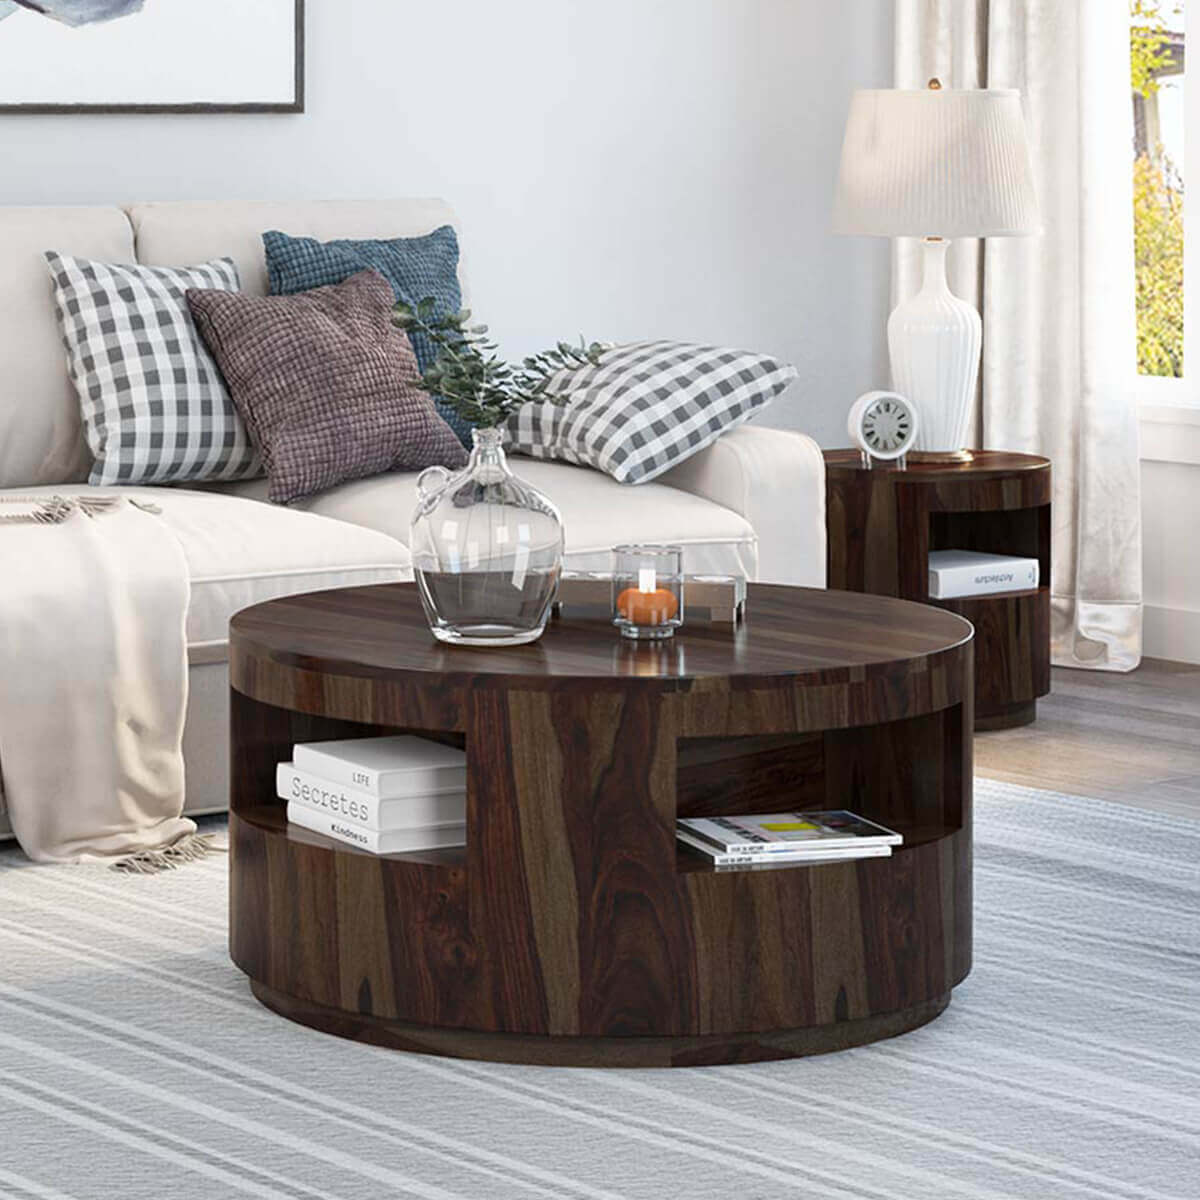 Rustic Round Wooden Coffee Table: Ladonia Rustic Solid Wood Round Coffee Table With Shelves